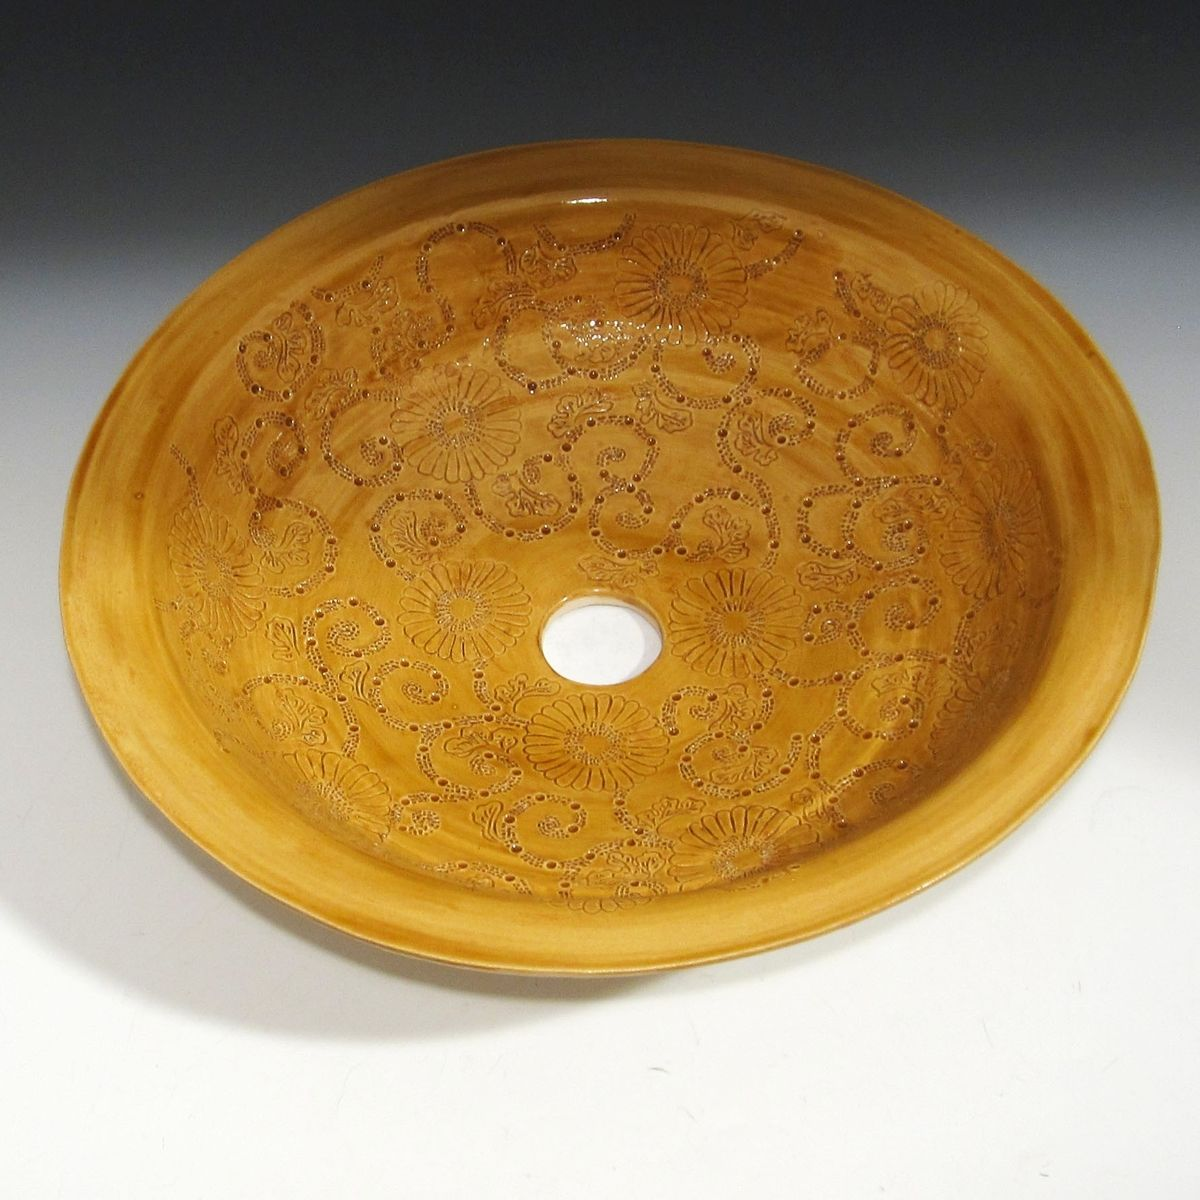 Thrown Pottery Sink With Engraved Chrysanthemum Design In Golden Yellow